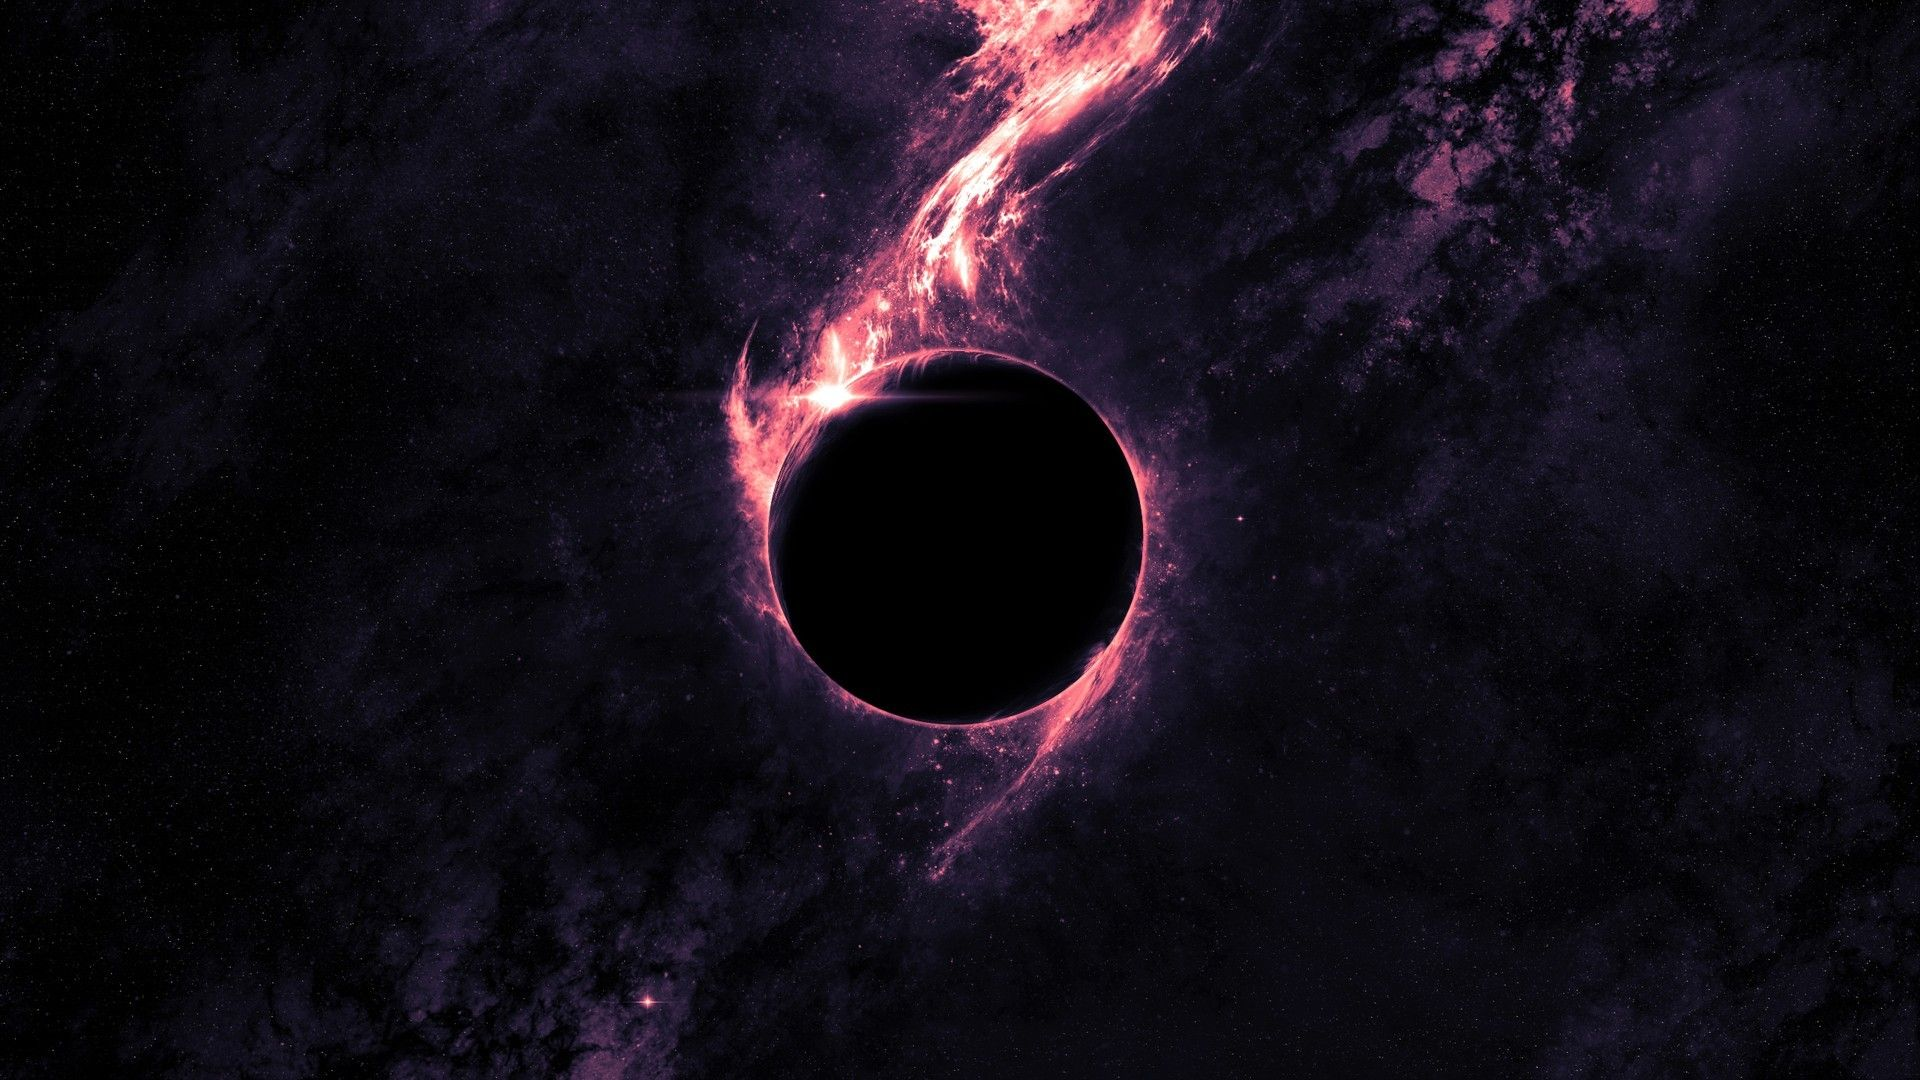 Space Wallpapers Collection Mostly 1920x1080 Black Hole Wallpaper Dark Purple Wallpaper Destiny Wallpaper Hd